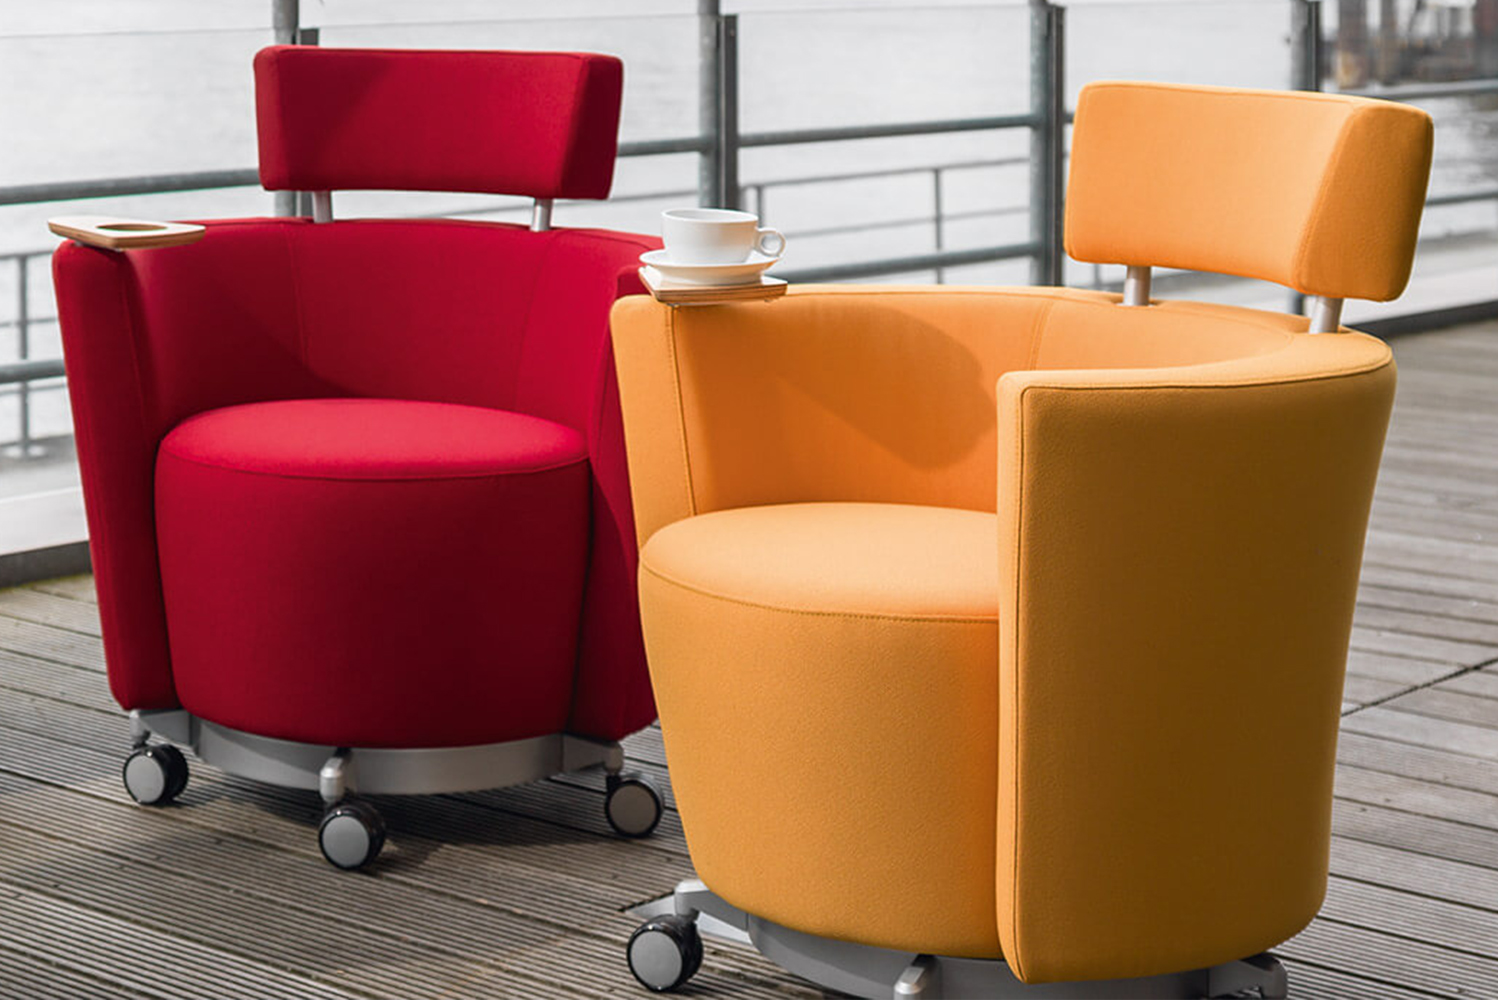 Introducing the Hello chair by CSD Studio for contract furniture manufacturer Haworth.